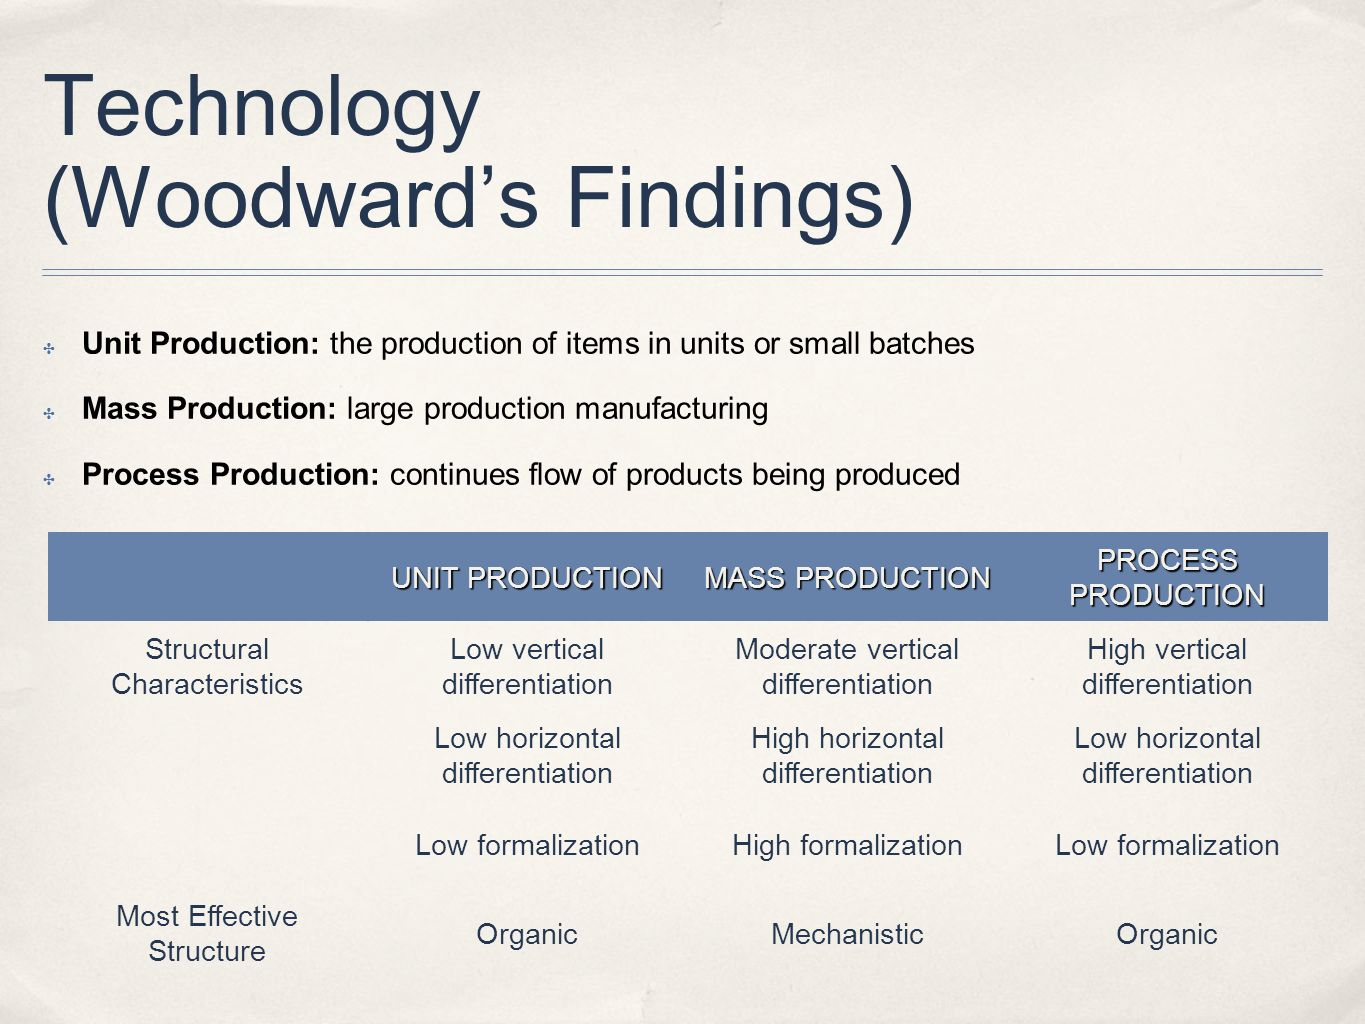 Technology (Woodward's Findings)